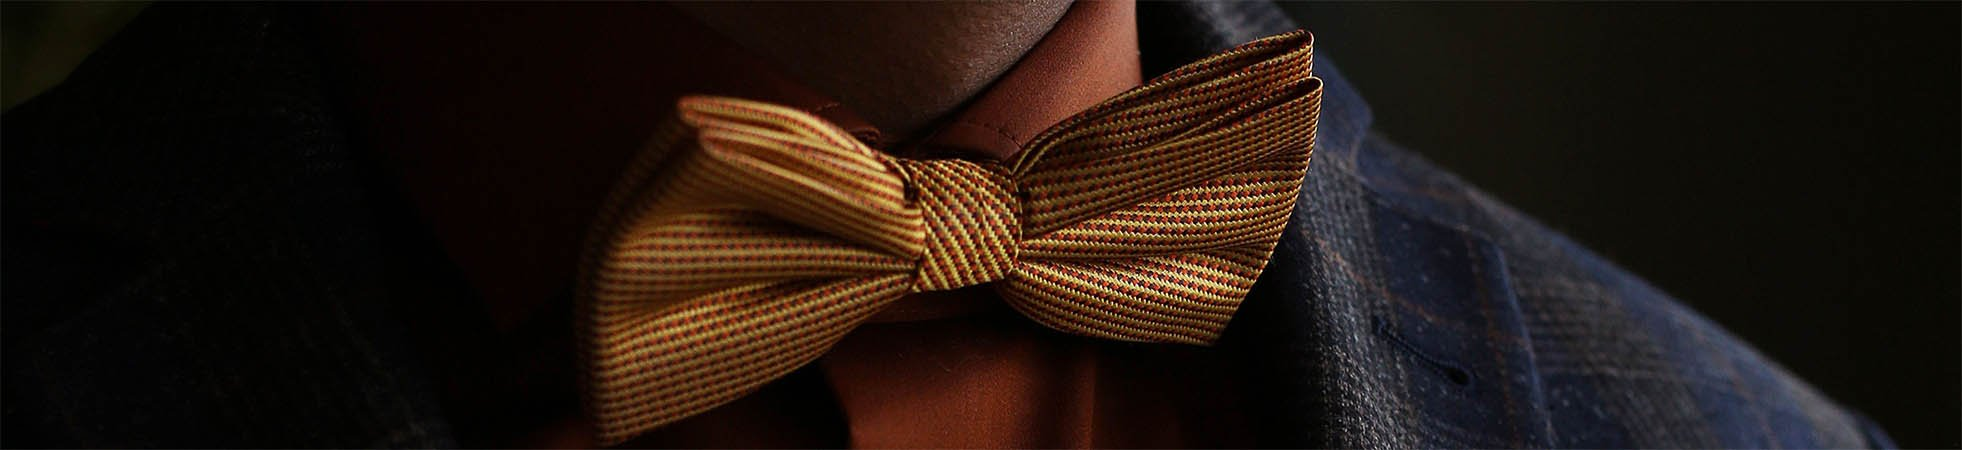 Men\'s bow ties and cumberbands Suitable ✔ Different colours and styles ✔ Self-tie or Pre-tied ✔ Shop online